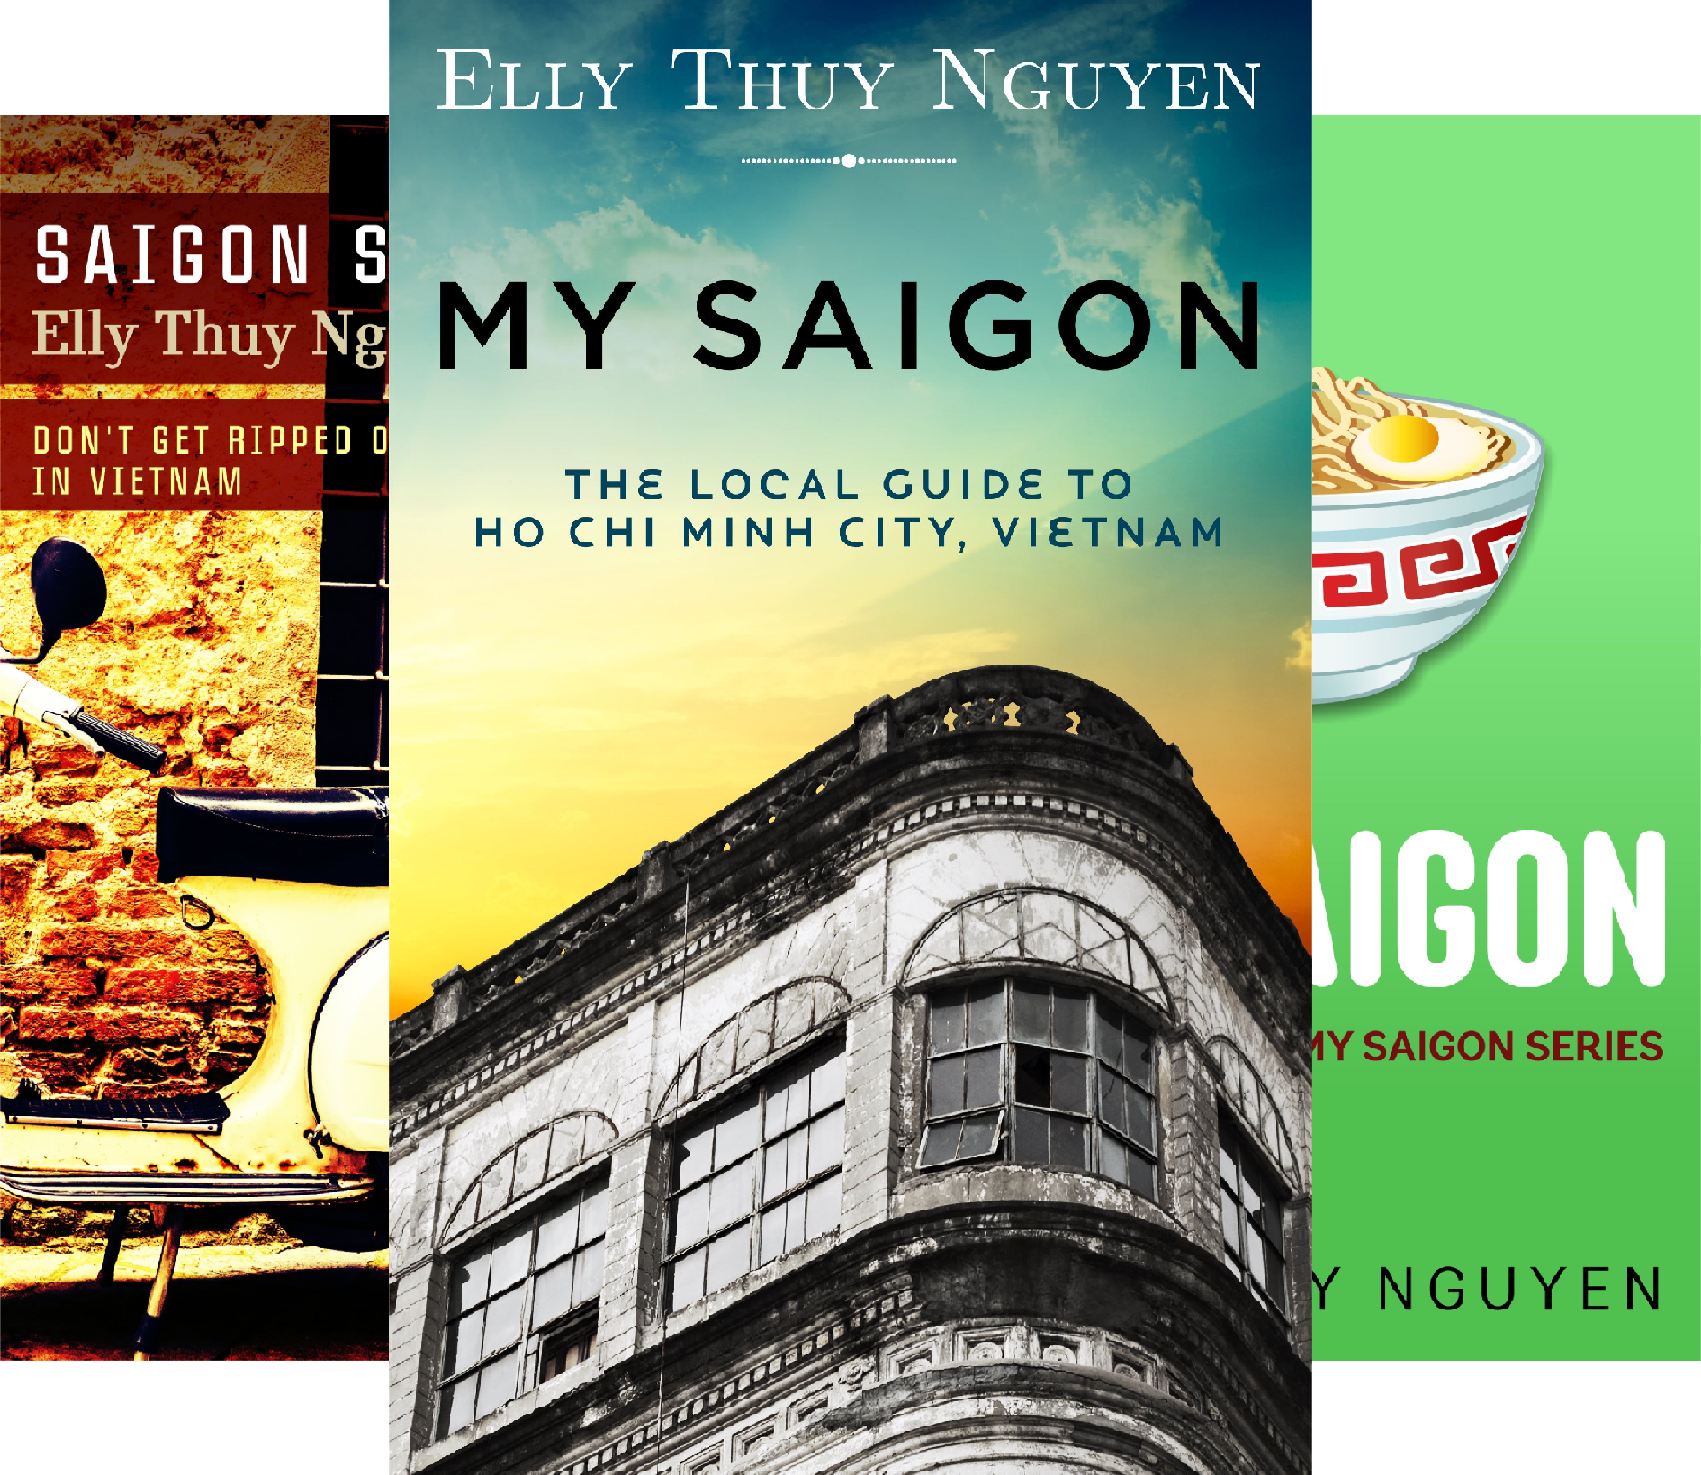 My Saigon (7 Book Series)